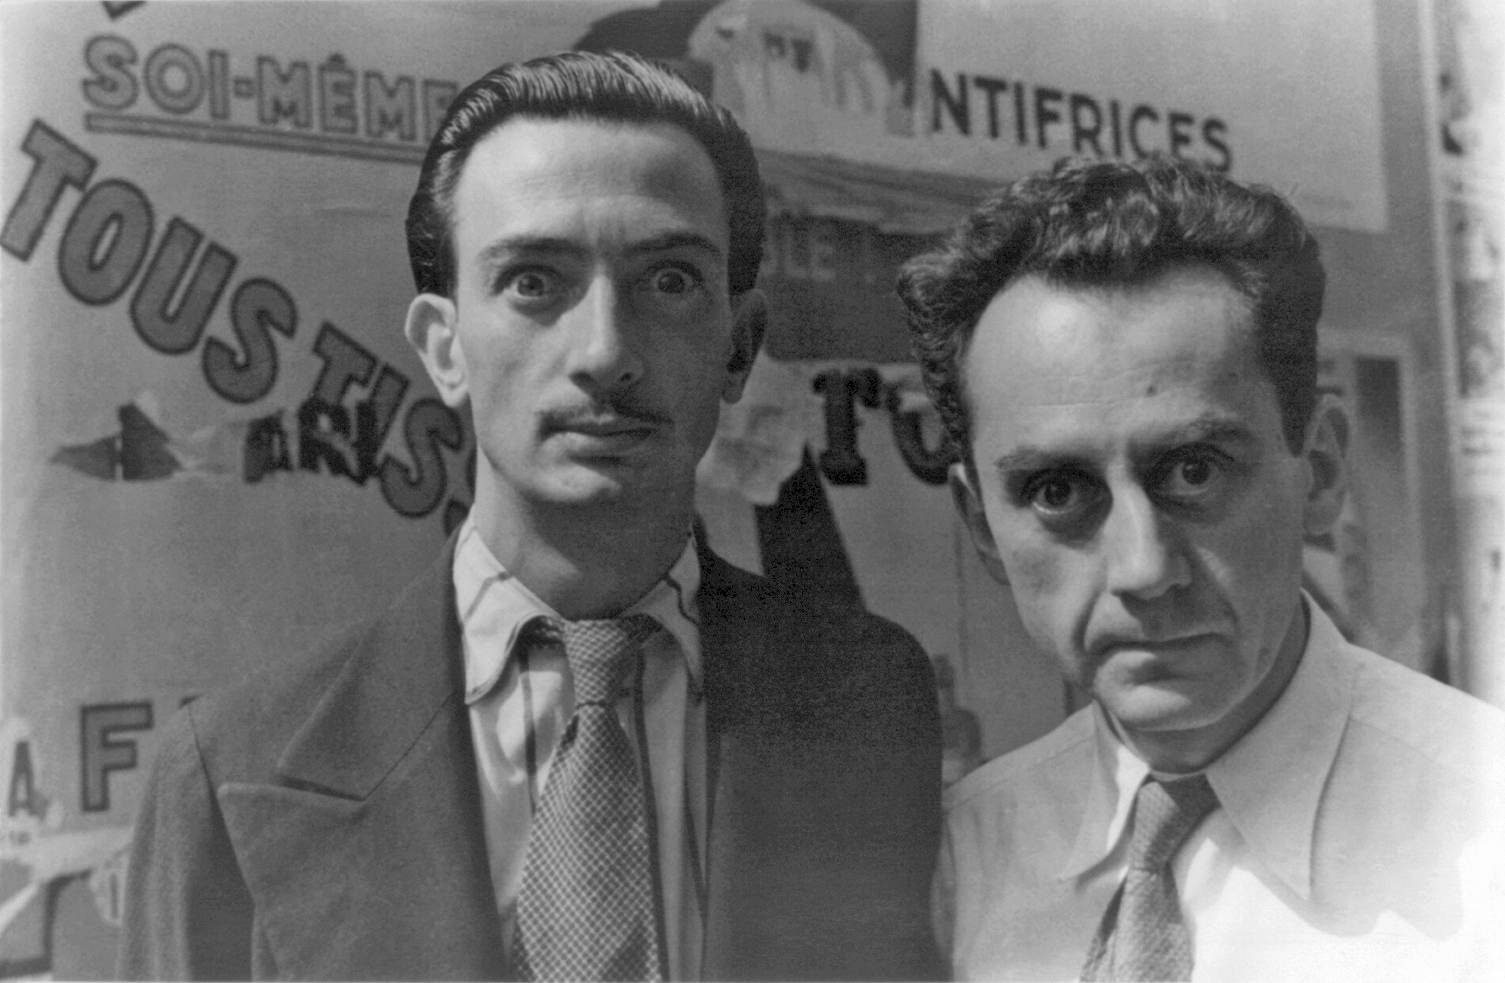 Not included in The Frick's show, this snapshot captures two of the many foreign-born artists who frequented Paris between the World Wars. The shorter, intense guy on the right is Man Ray. On the left, his fellow surrealist Salvador Dali. (Photo by Carl Van Vechten, 1934)